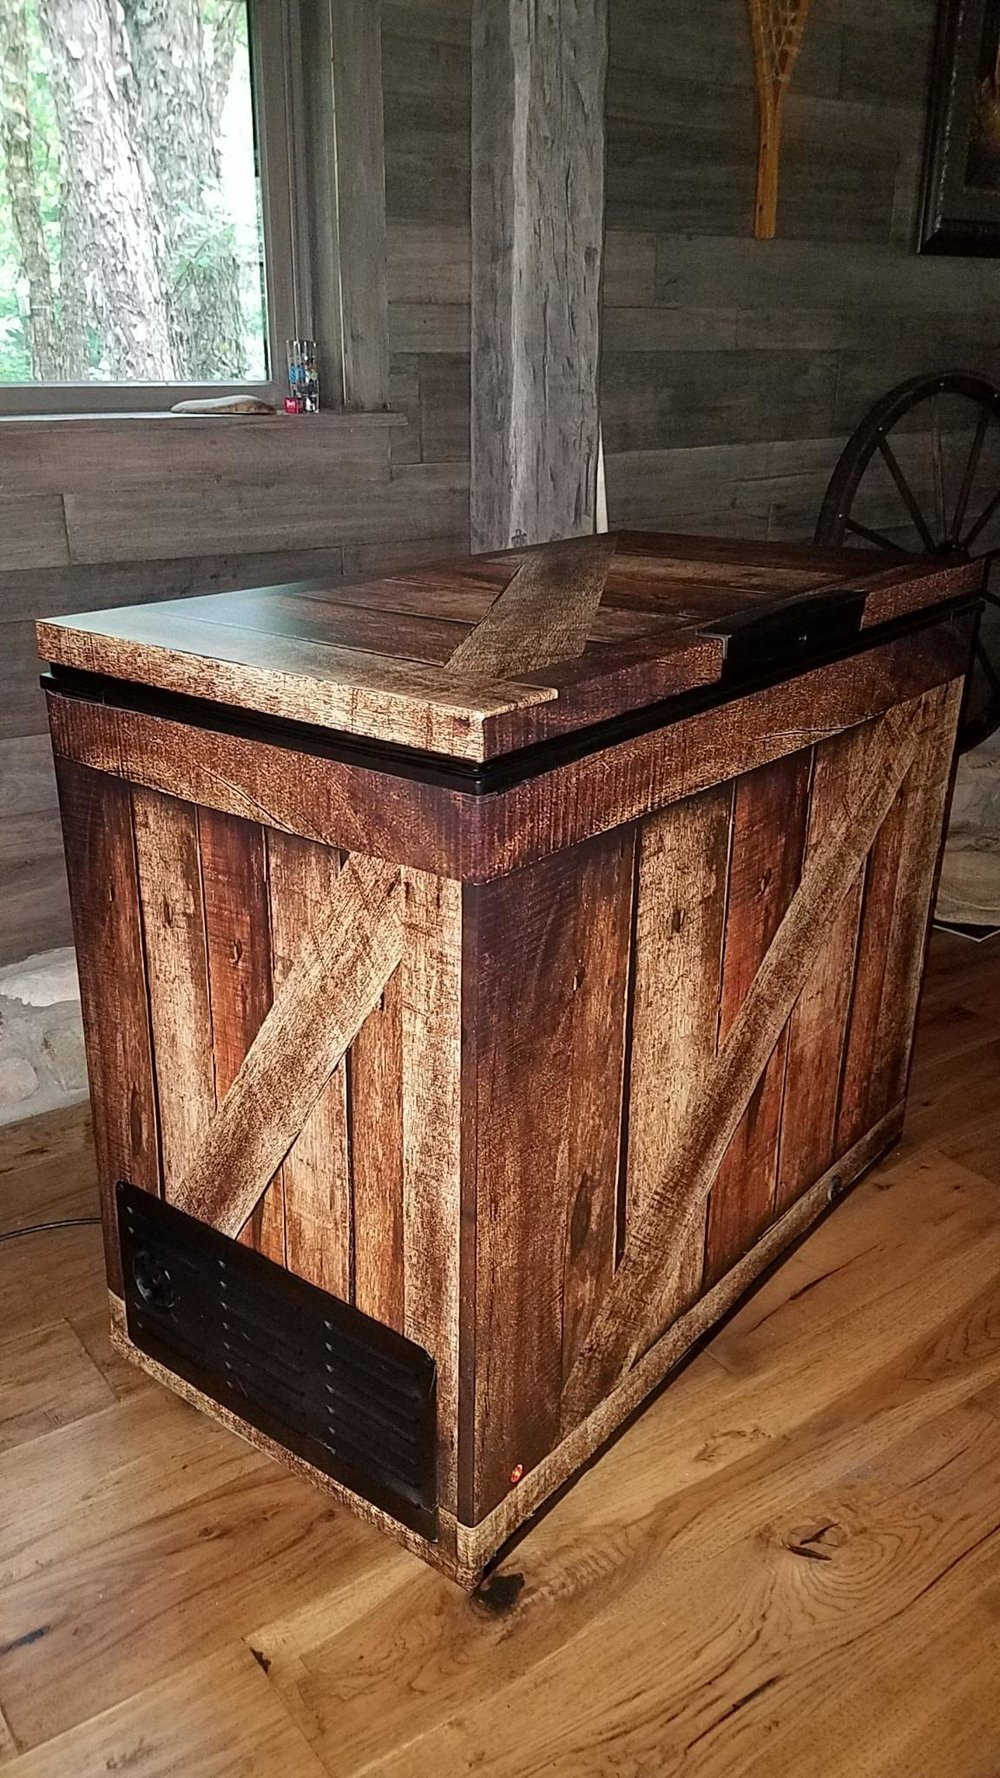 Weathered Wood Crate Chest Freezer Wrap.jpg